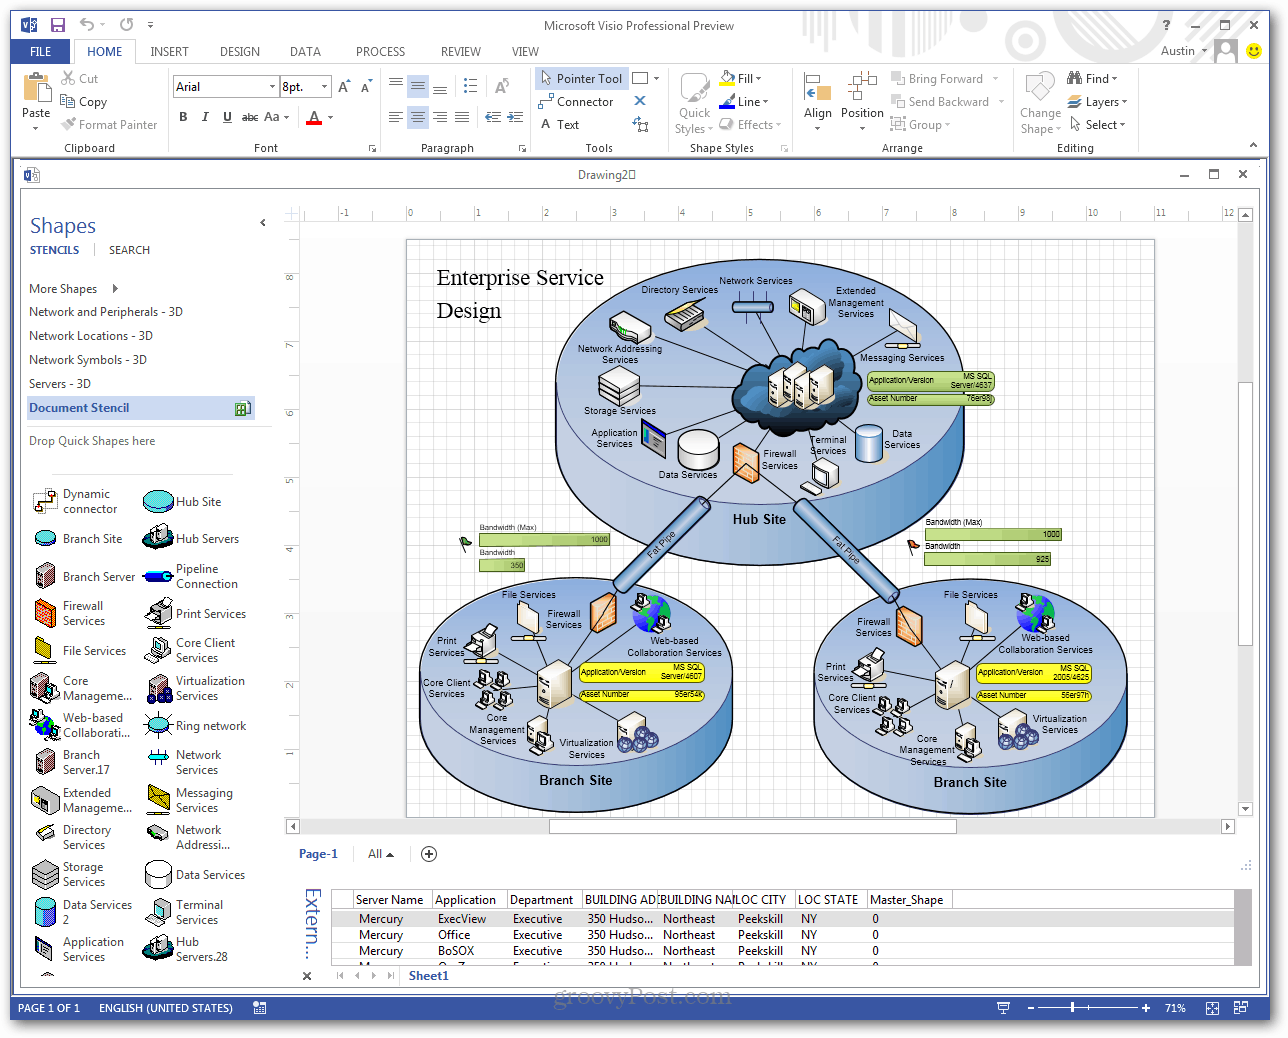 What Is Microsoft Visio And Does It Do Groovypost Make A Block Diagram In Word This Makes Diagrams Functional Current The Most Recent Example Ive Seen Involved Using To Monitor Network Status Across Localized Broadband